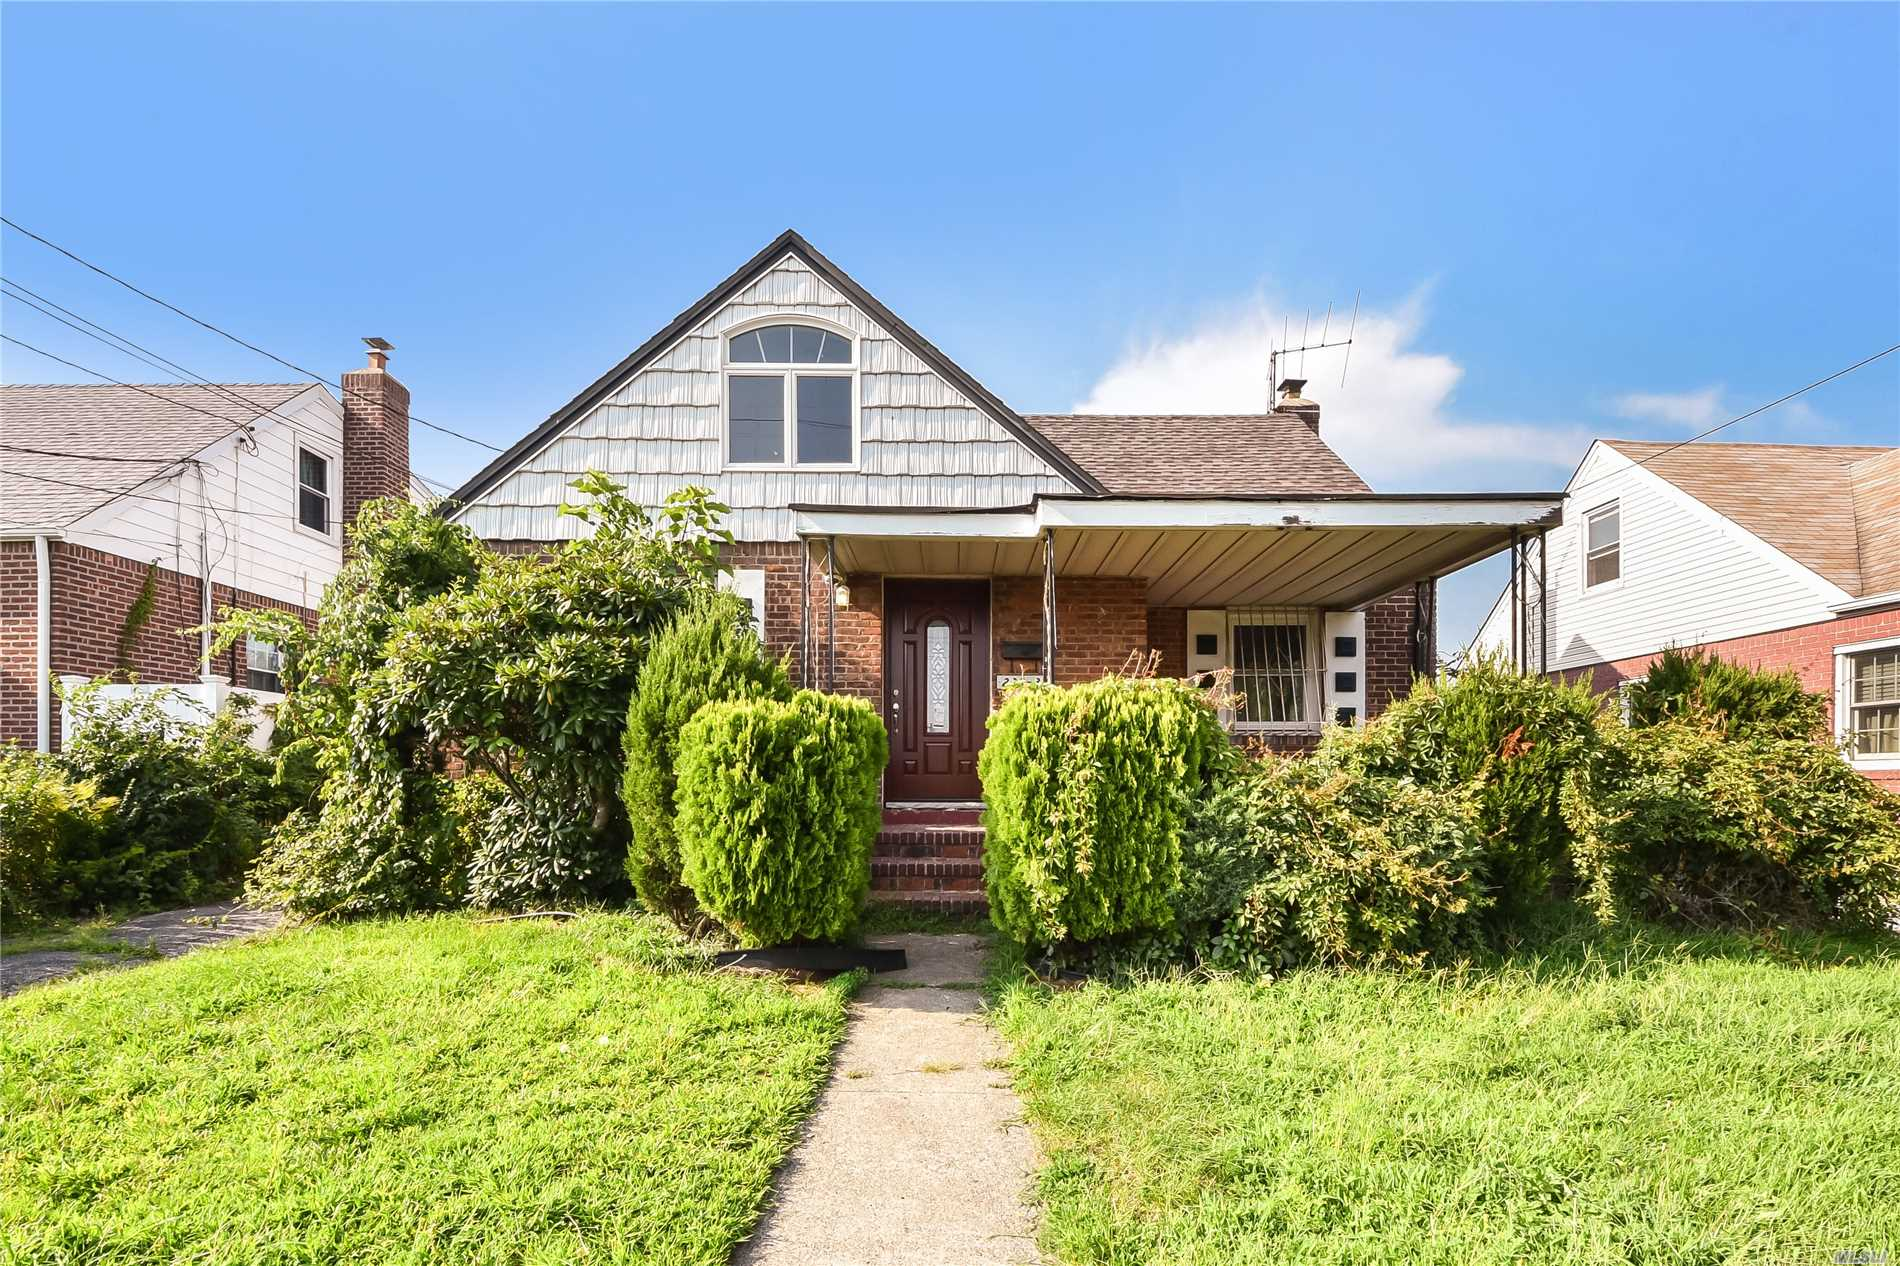 Elmont. Beautiful And Charming Newly Renovated Brick House With 2.5 Baths And A Finished Basement. Great Location. New Kitchen, New Baths, New Appliances, New Windows.